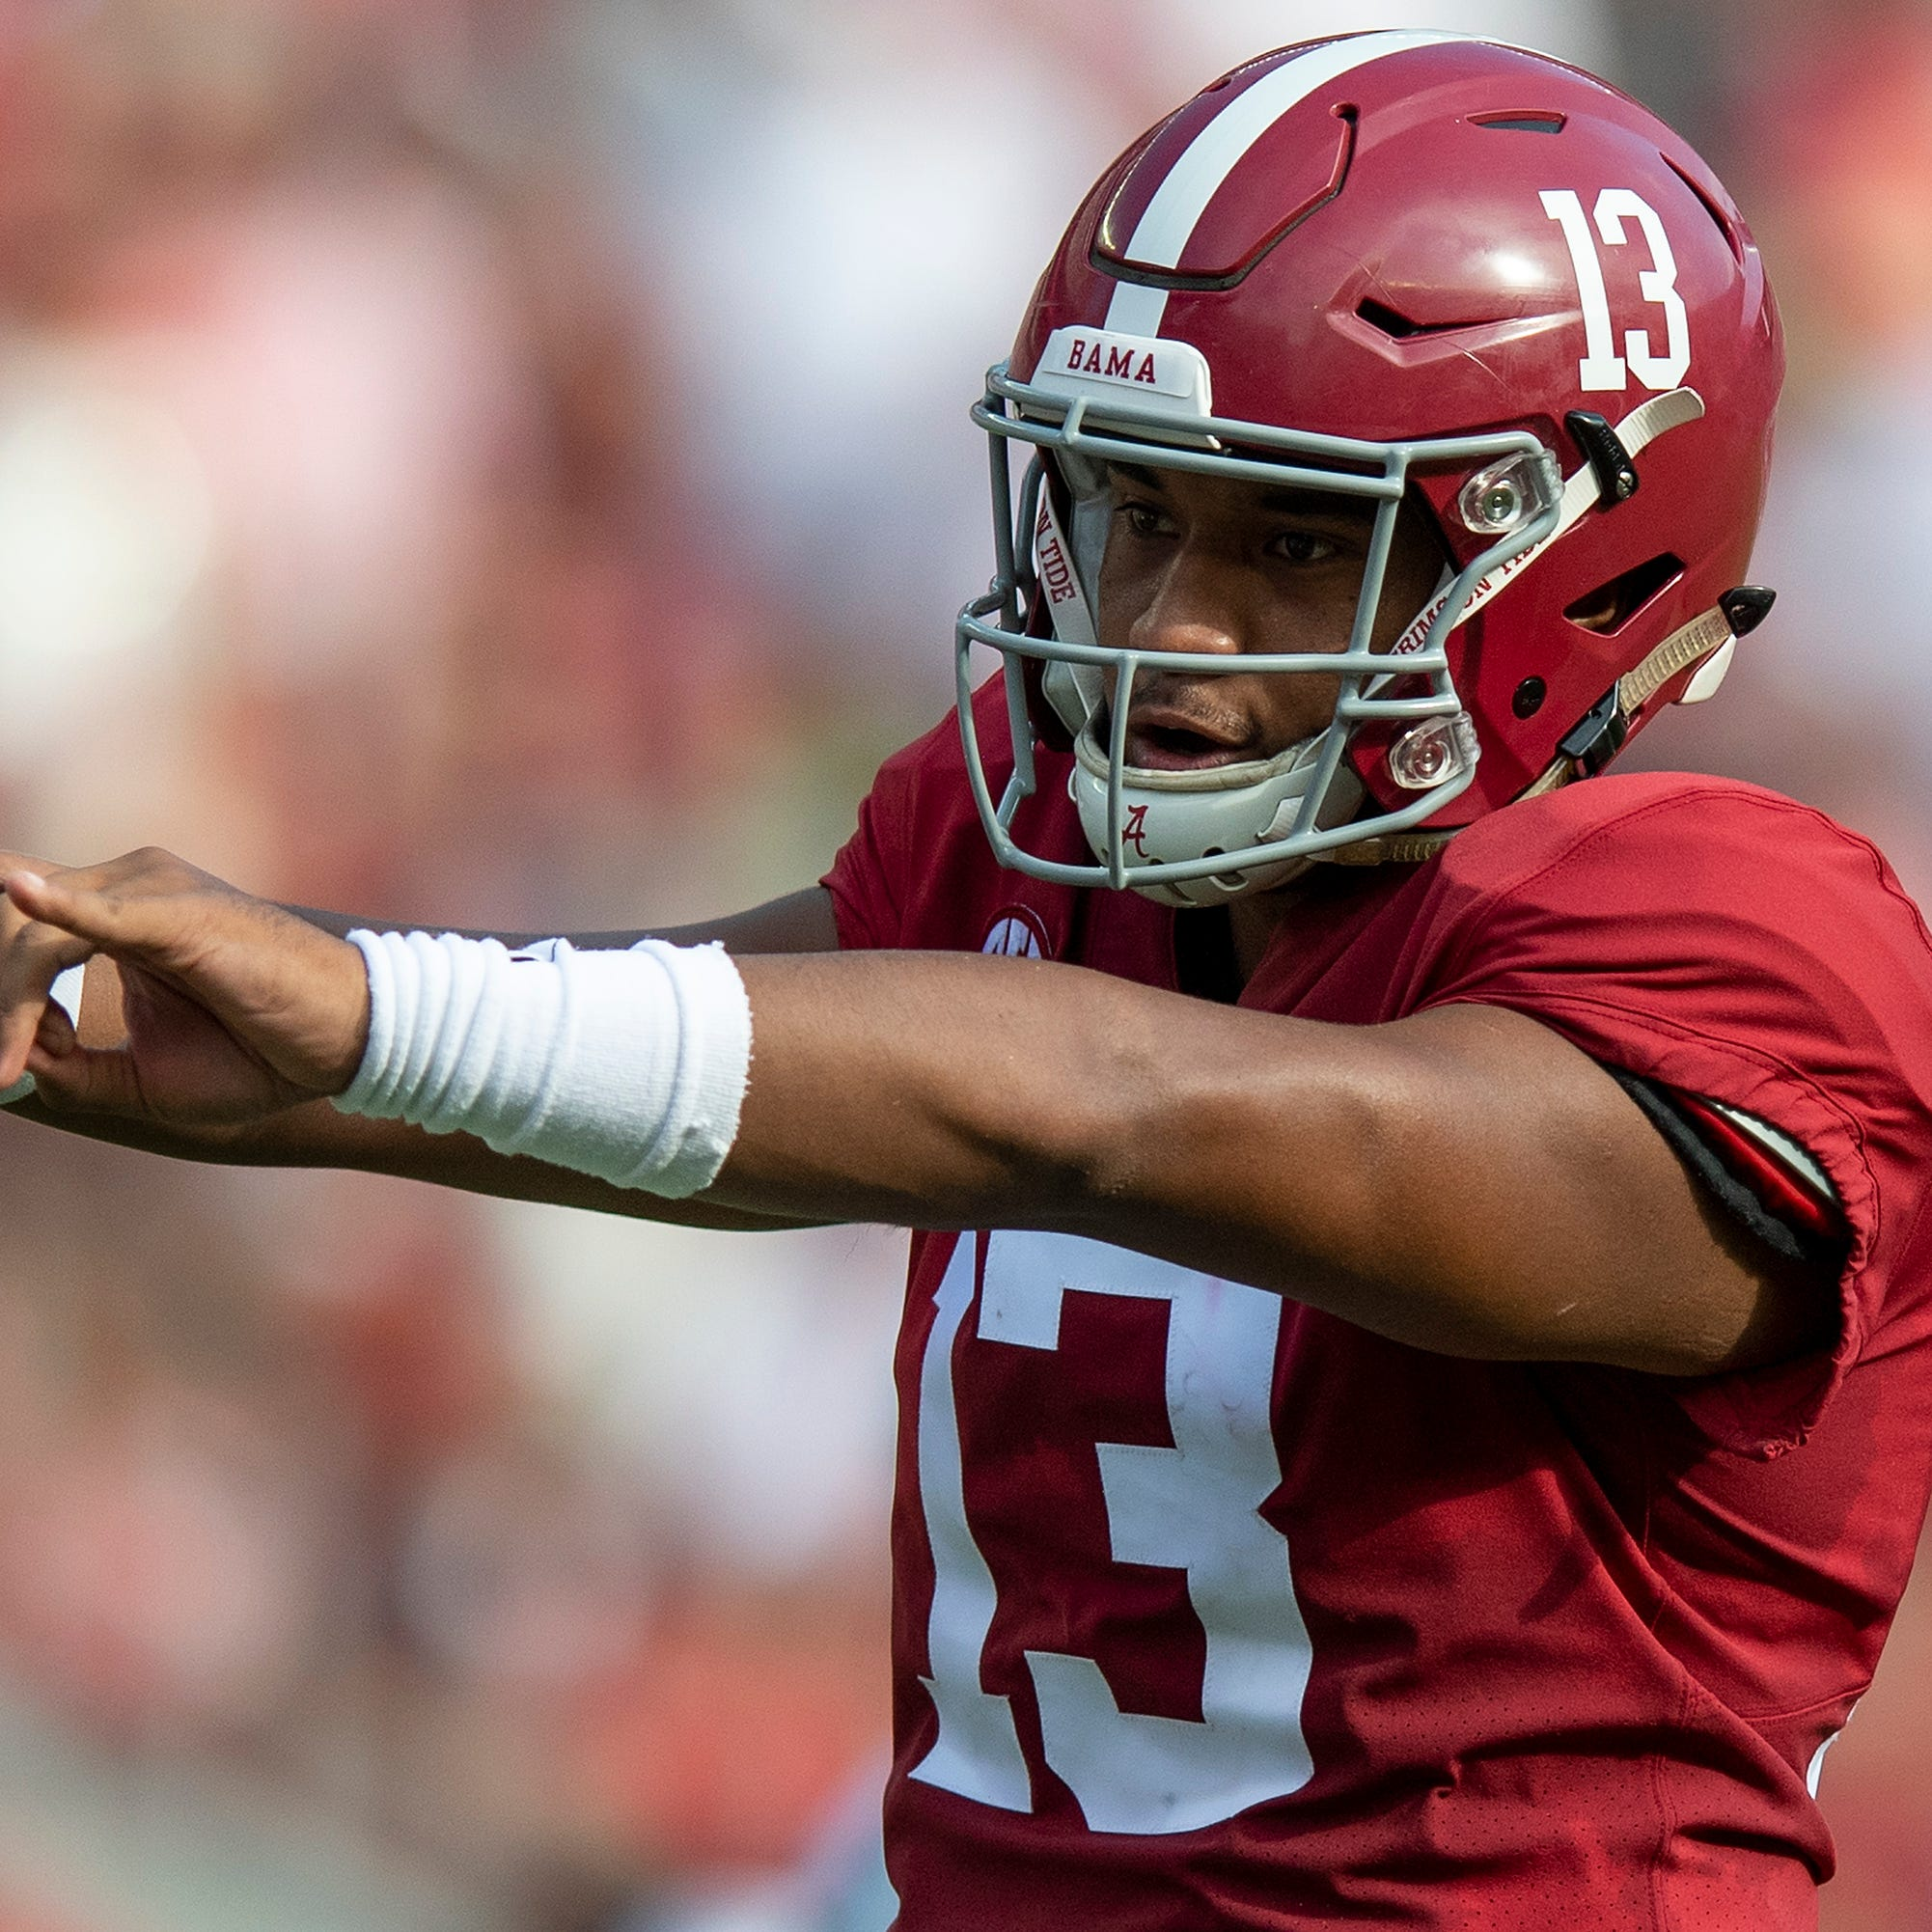 Sure, it's 'rat poison' to Saban, but you can't deny how good Tua-led Bama is